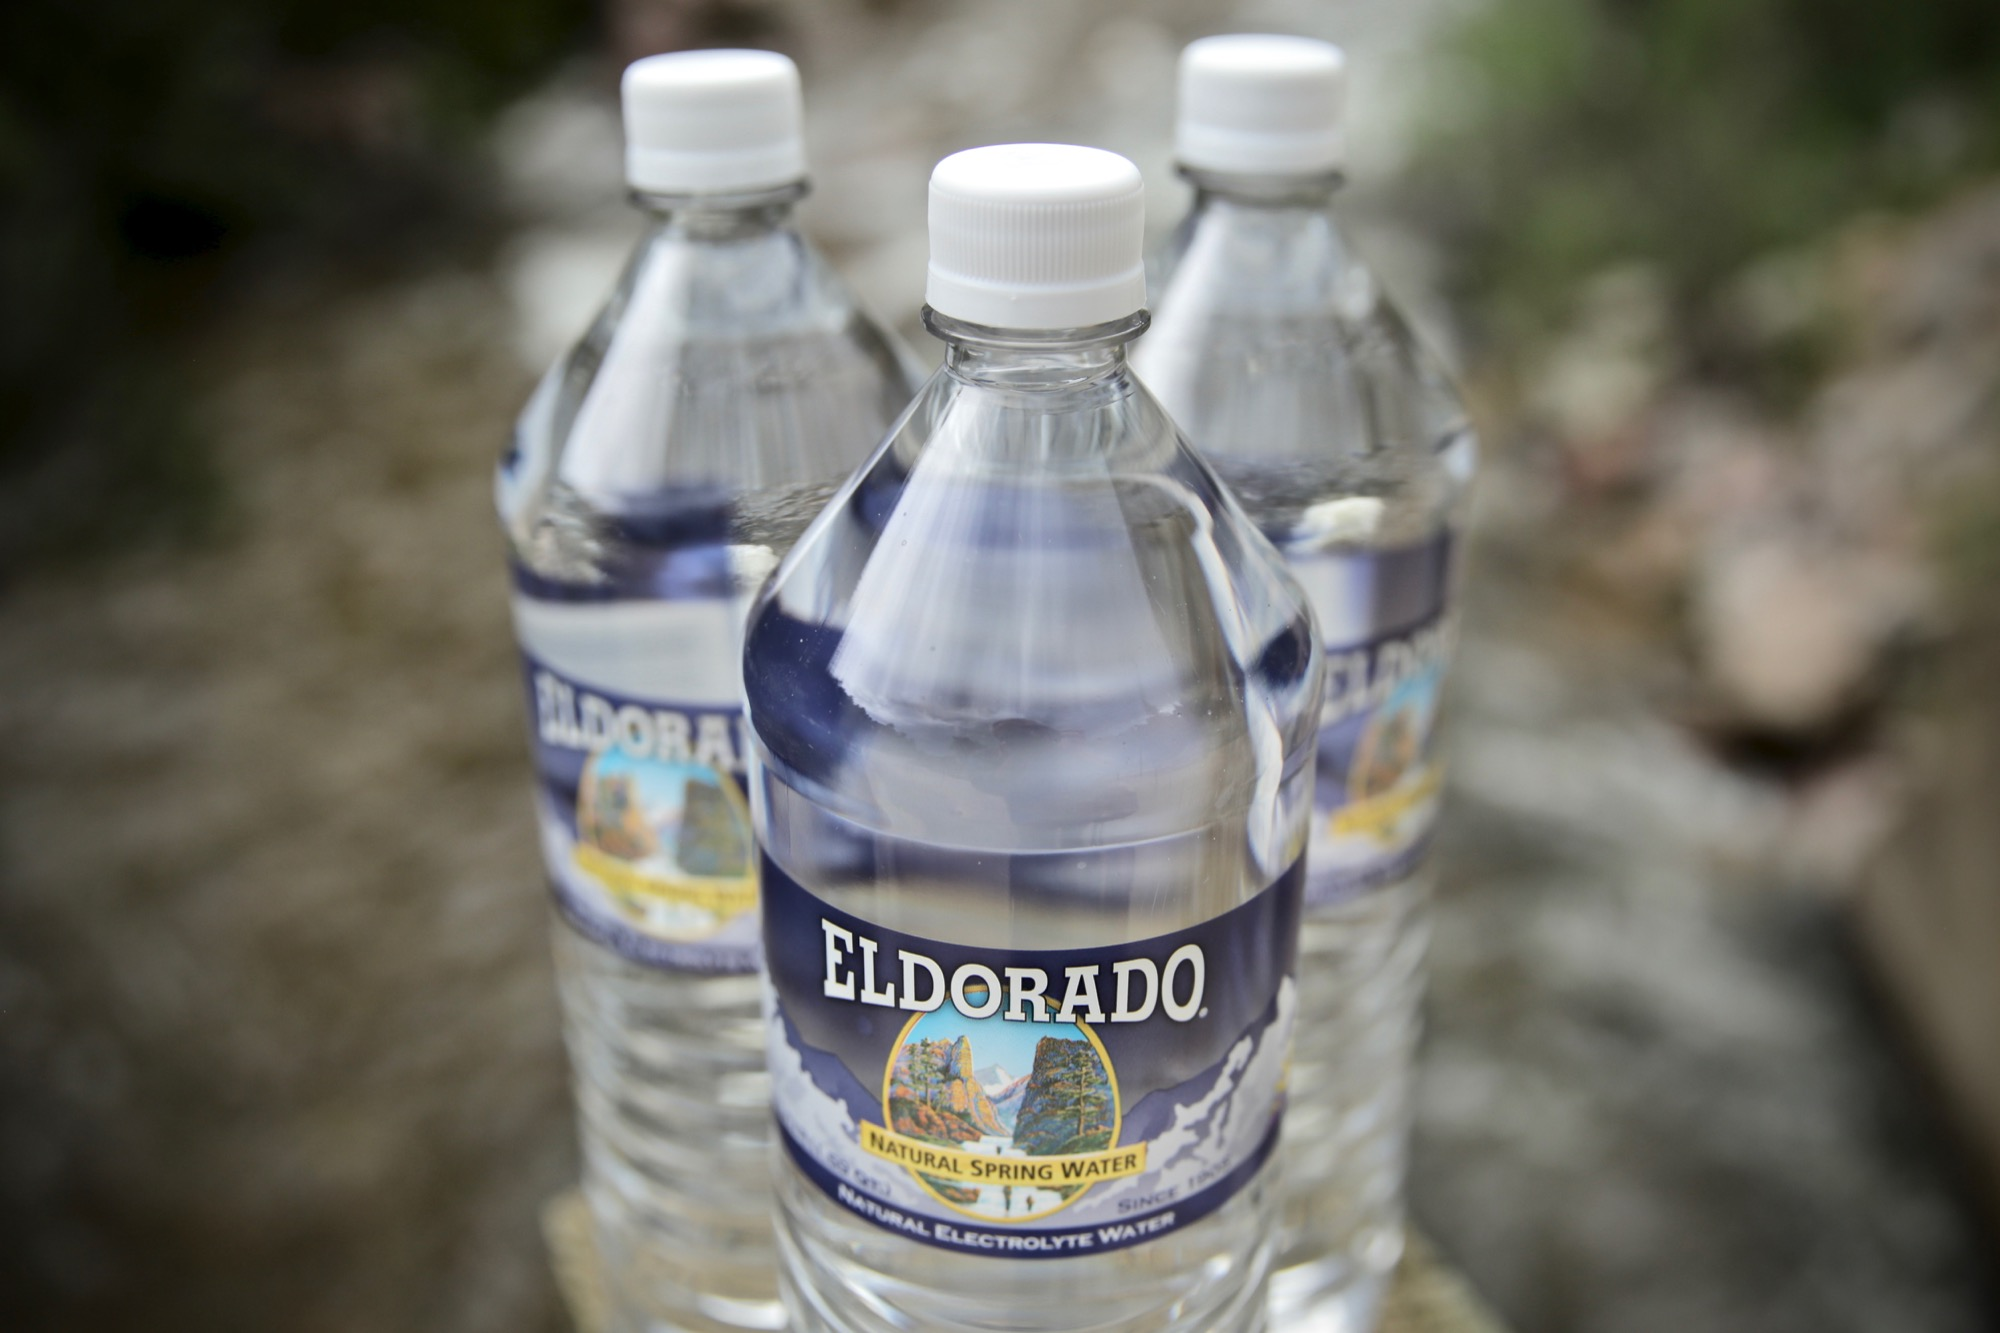 Photo: Eldorado Spring Water